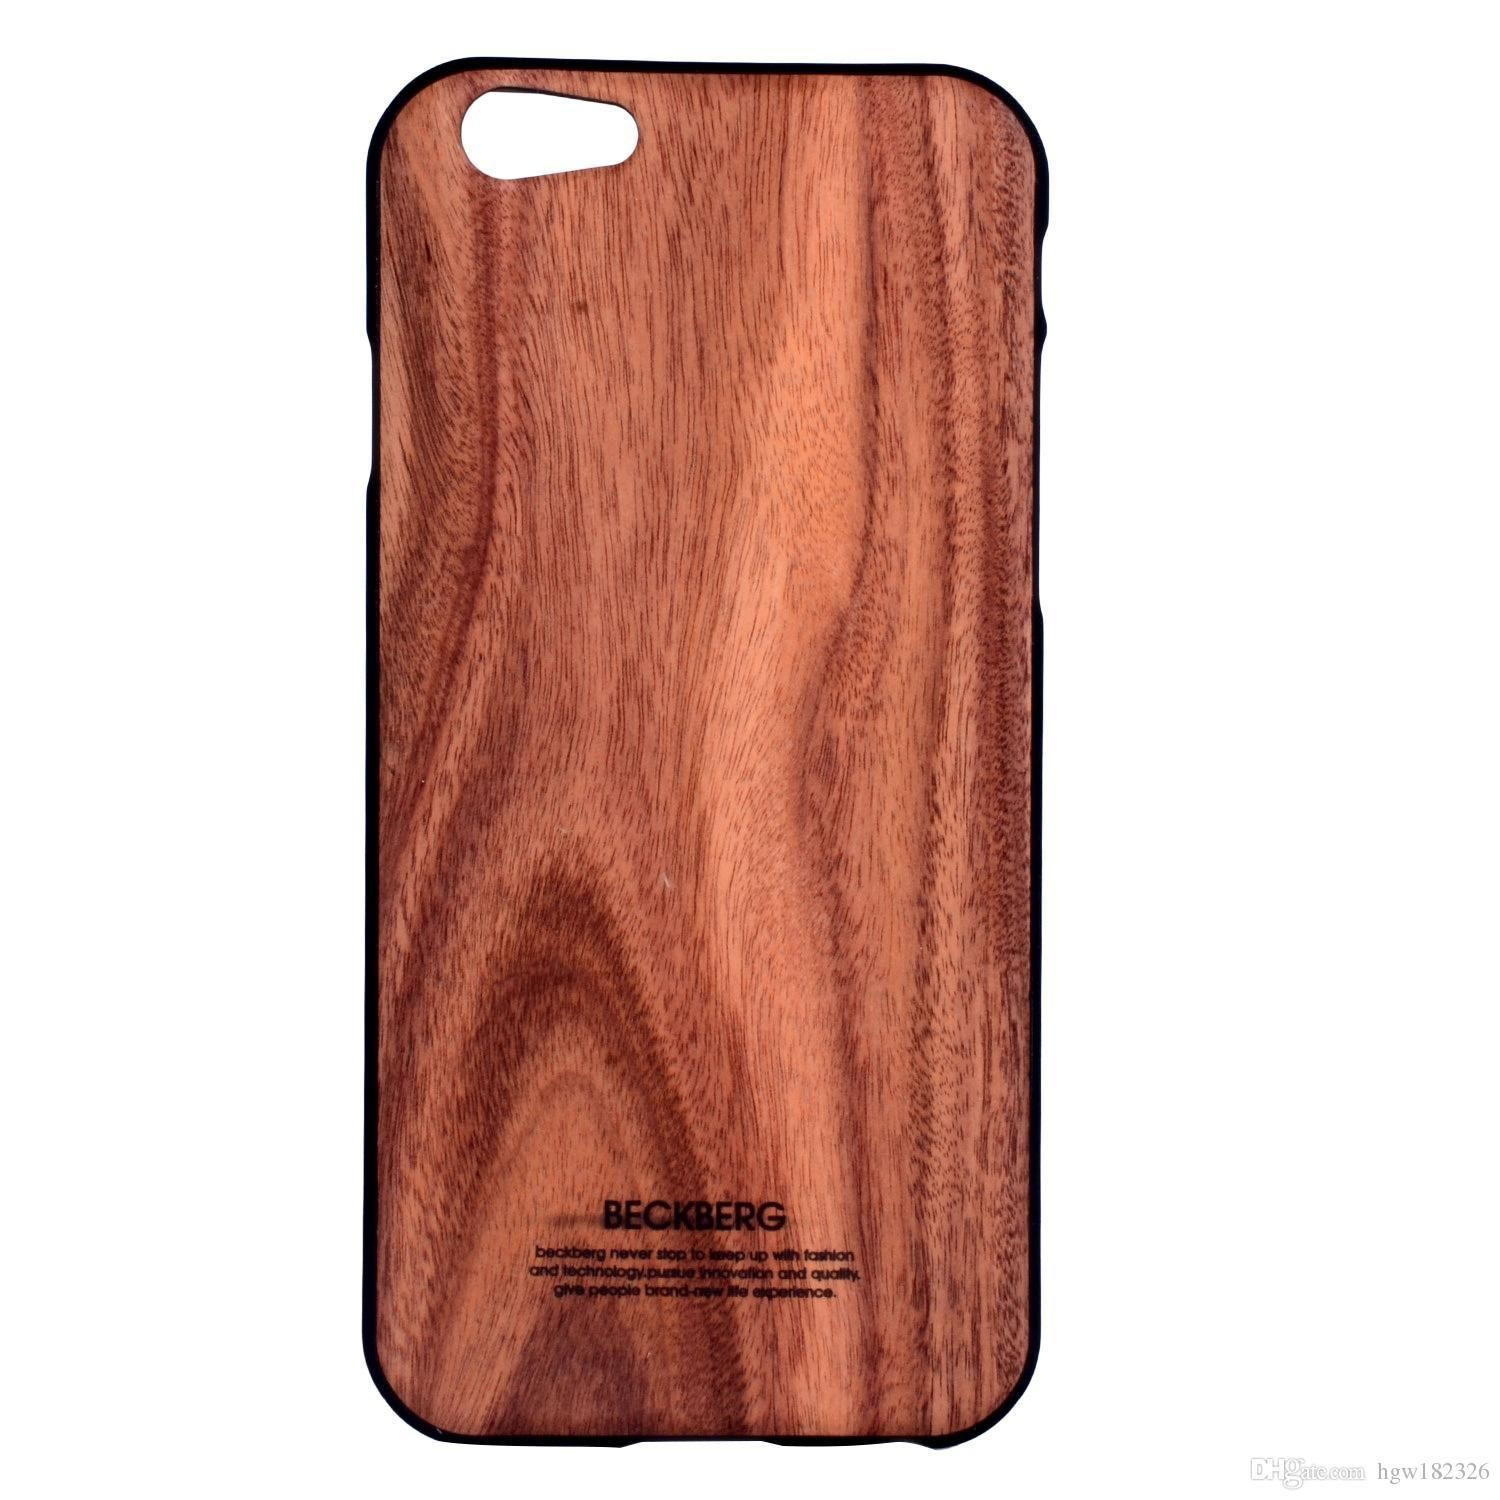 promo code 0621b 41d49 Beckberg ® Apple iPhone 6 / 6S Rainforest Wood Series Protective Case Back  Cover